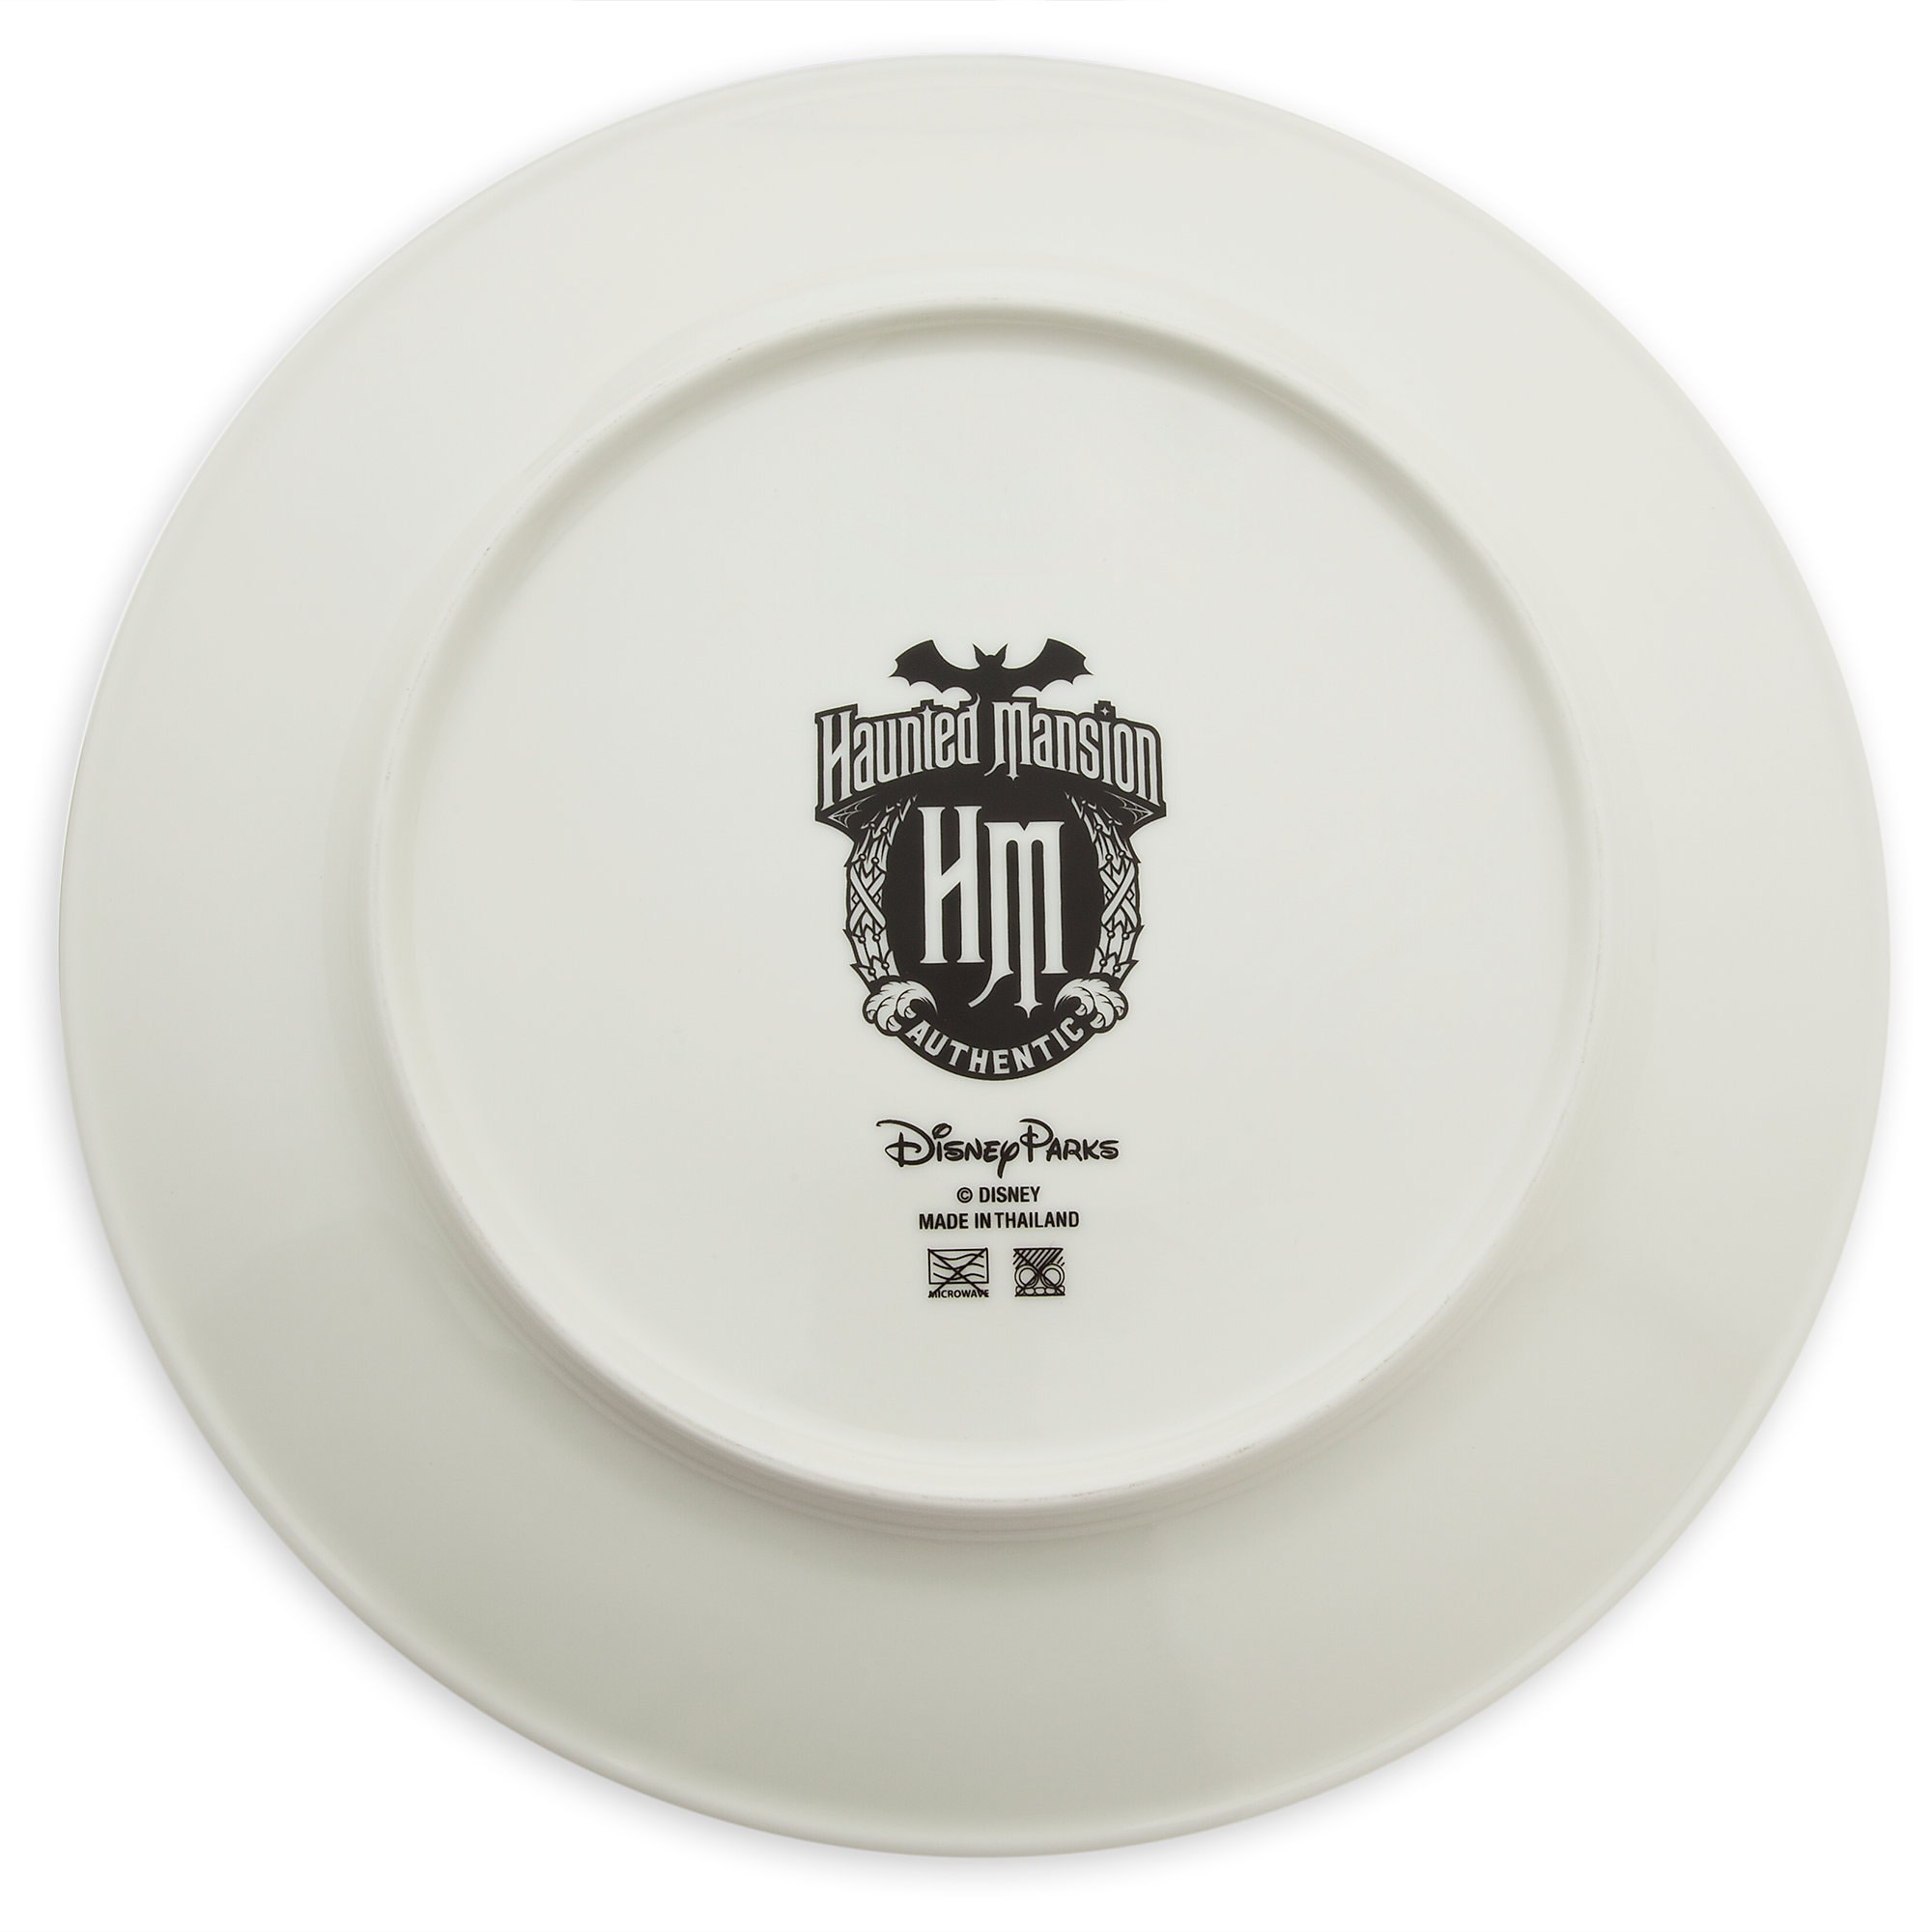 Thumbnail Image of The Haunted Mansion Porcelain Dinner Plate # 3  sc 1 st  shopDisney & The Haunted Mansion Porcelain Dinner Plate | shopDisney